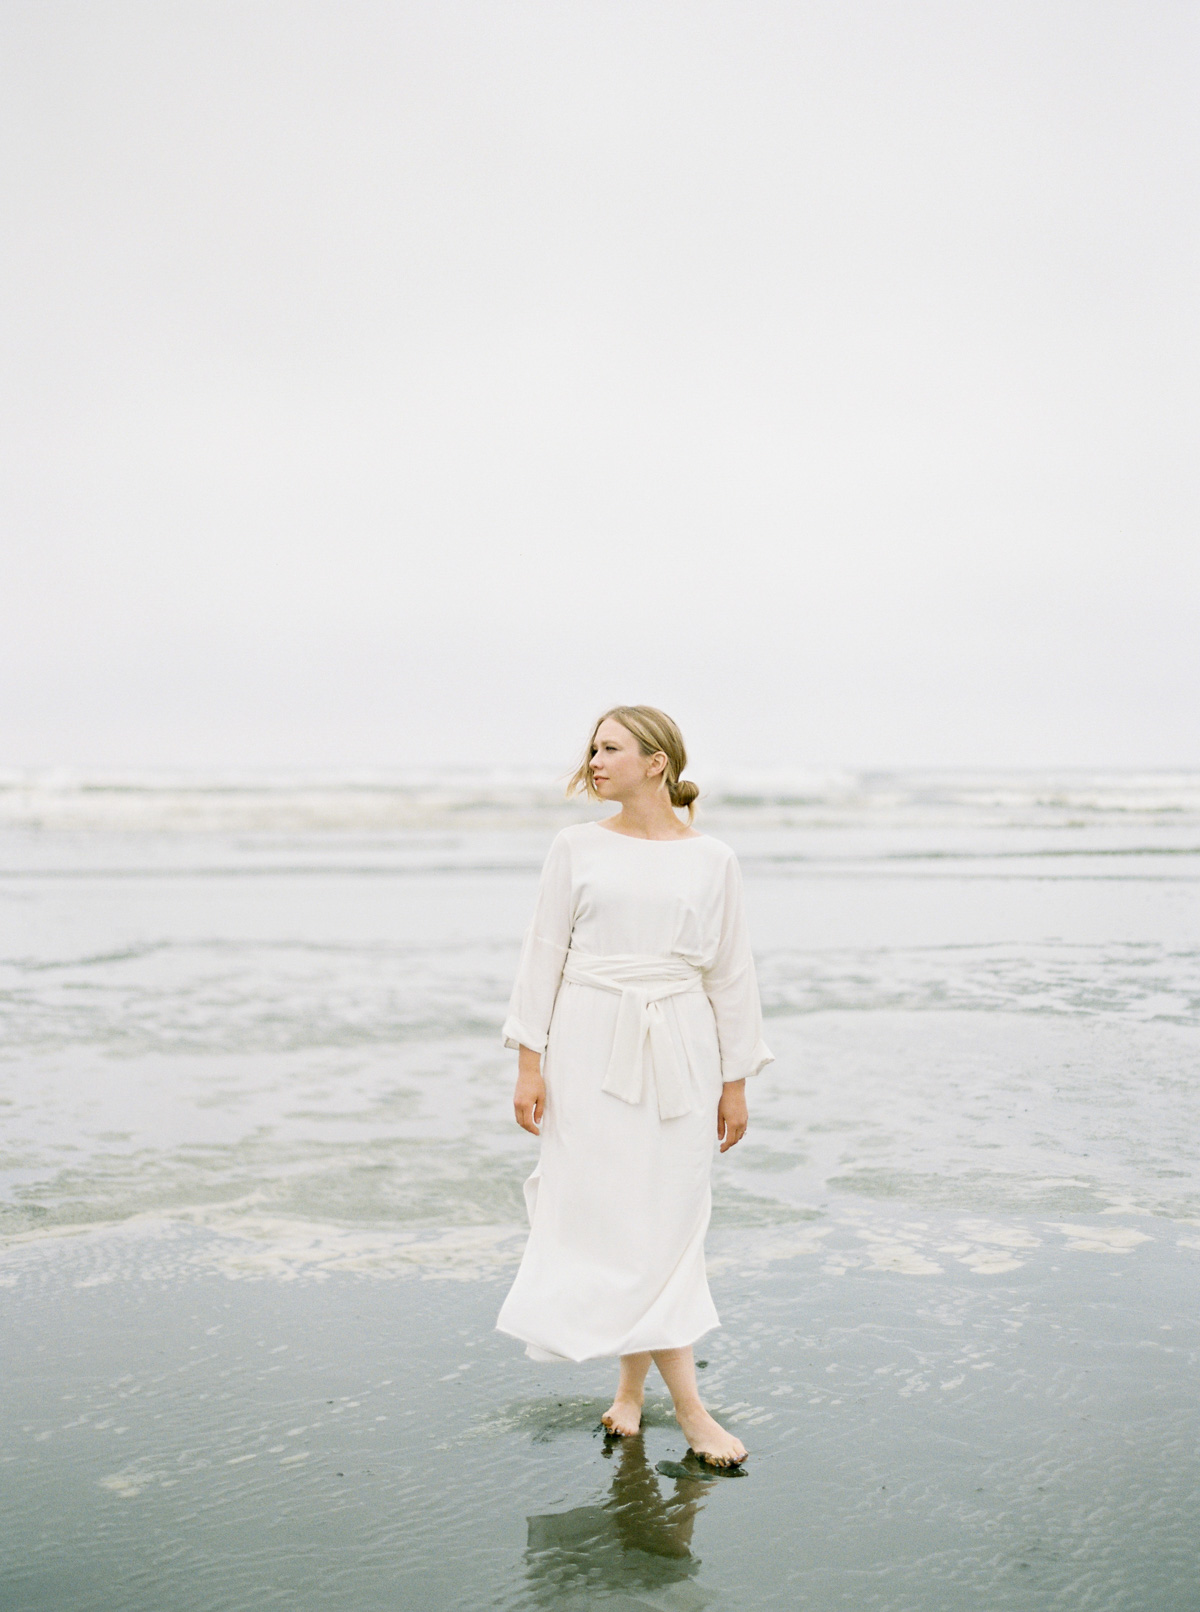 Photograph of a woman in a white dress near the ocean from Seattle Lifestyle photographer Anna Peters